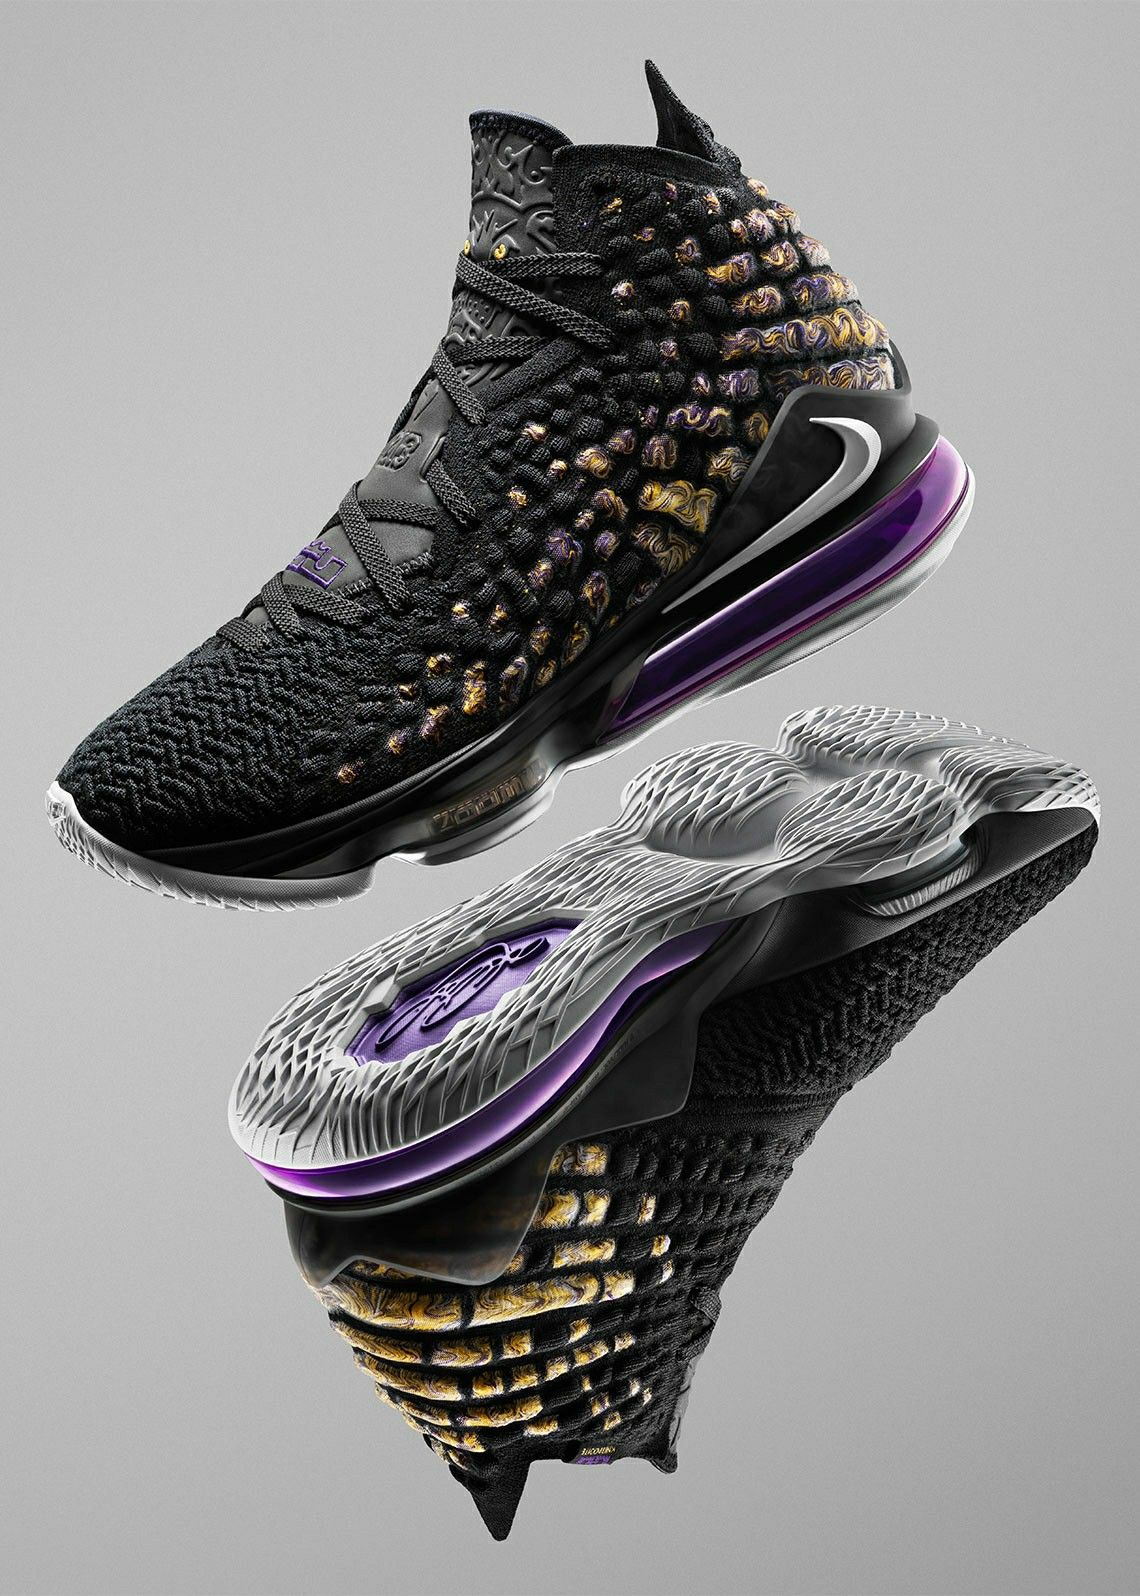 Pin By Wilkong On Autos Nike Basketball Shoes Lebron James Shoes Lebron Shoes